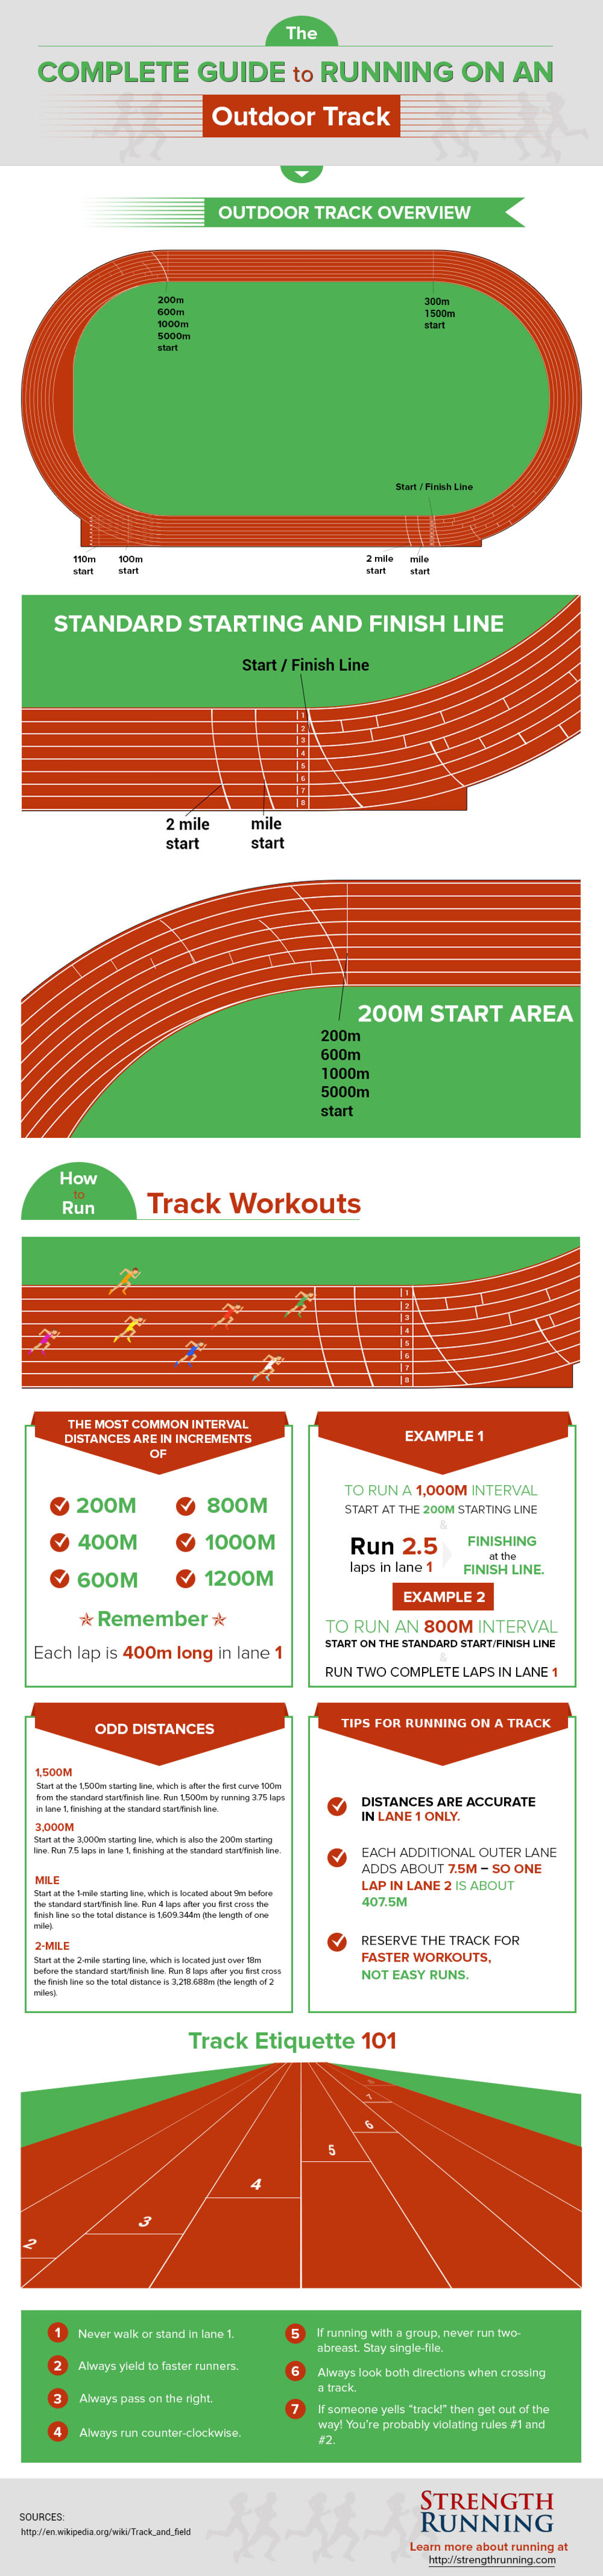 How to Run Workouts on an Outdoor Track Infographic